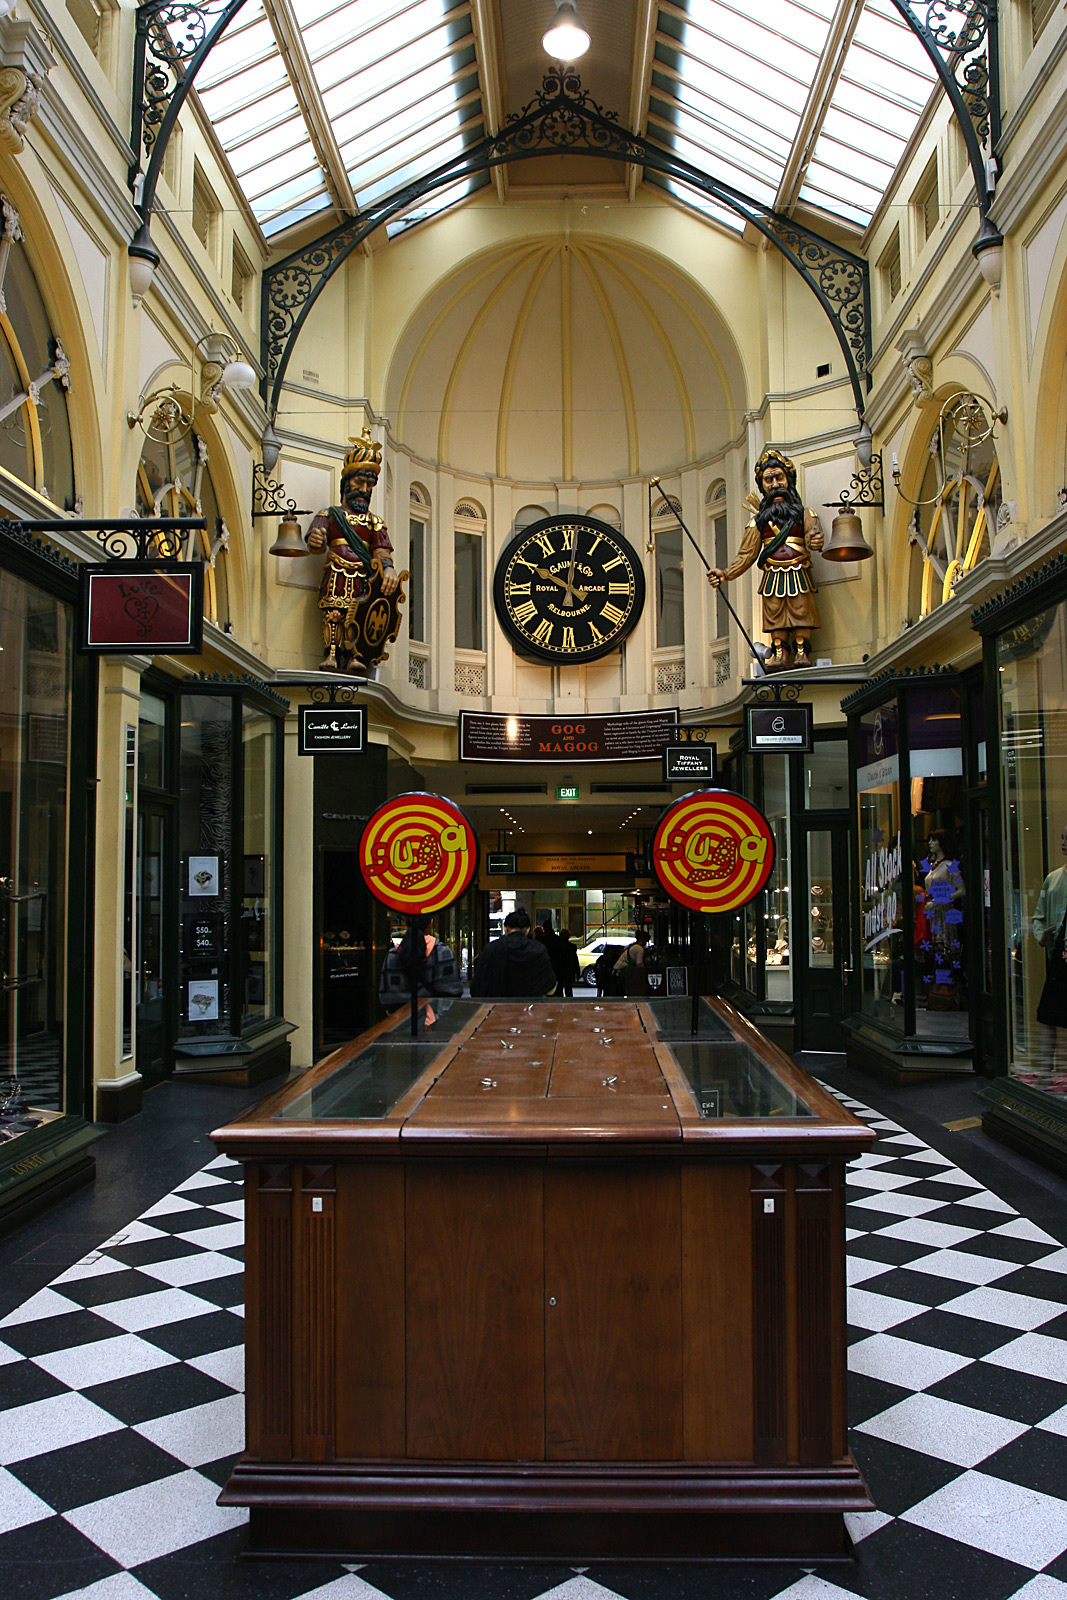 http://upload.wikimedia.org/wikipedia/commons/6/68/Gog%26Magog-2%2C-Royal-Arcade%2C-Melb%2C-11.08.2008.jpg